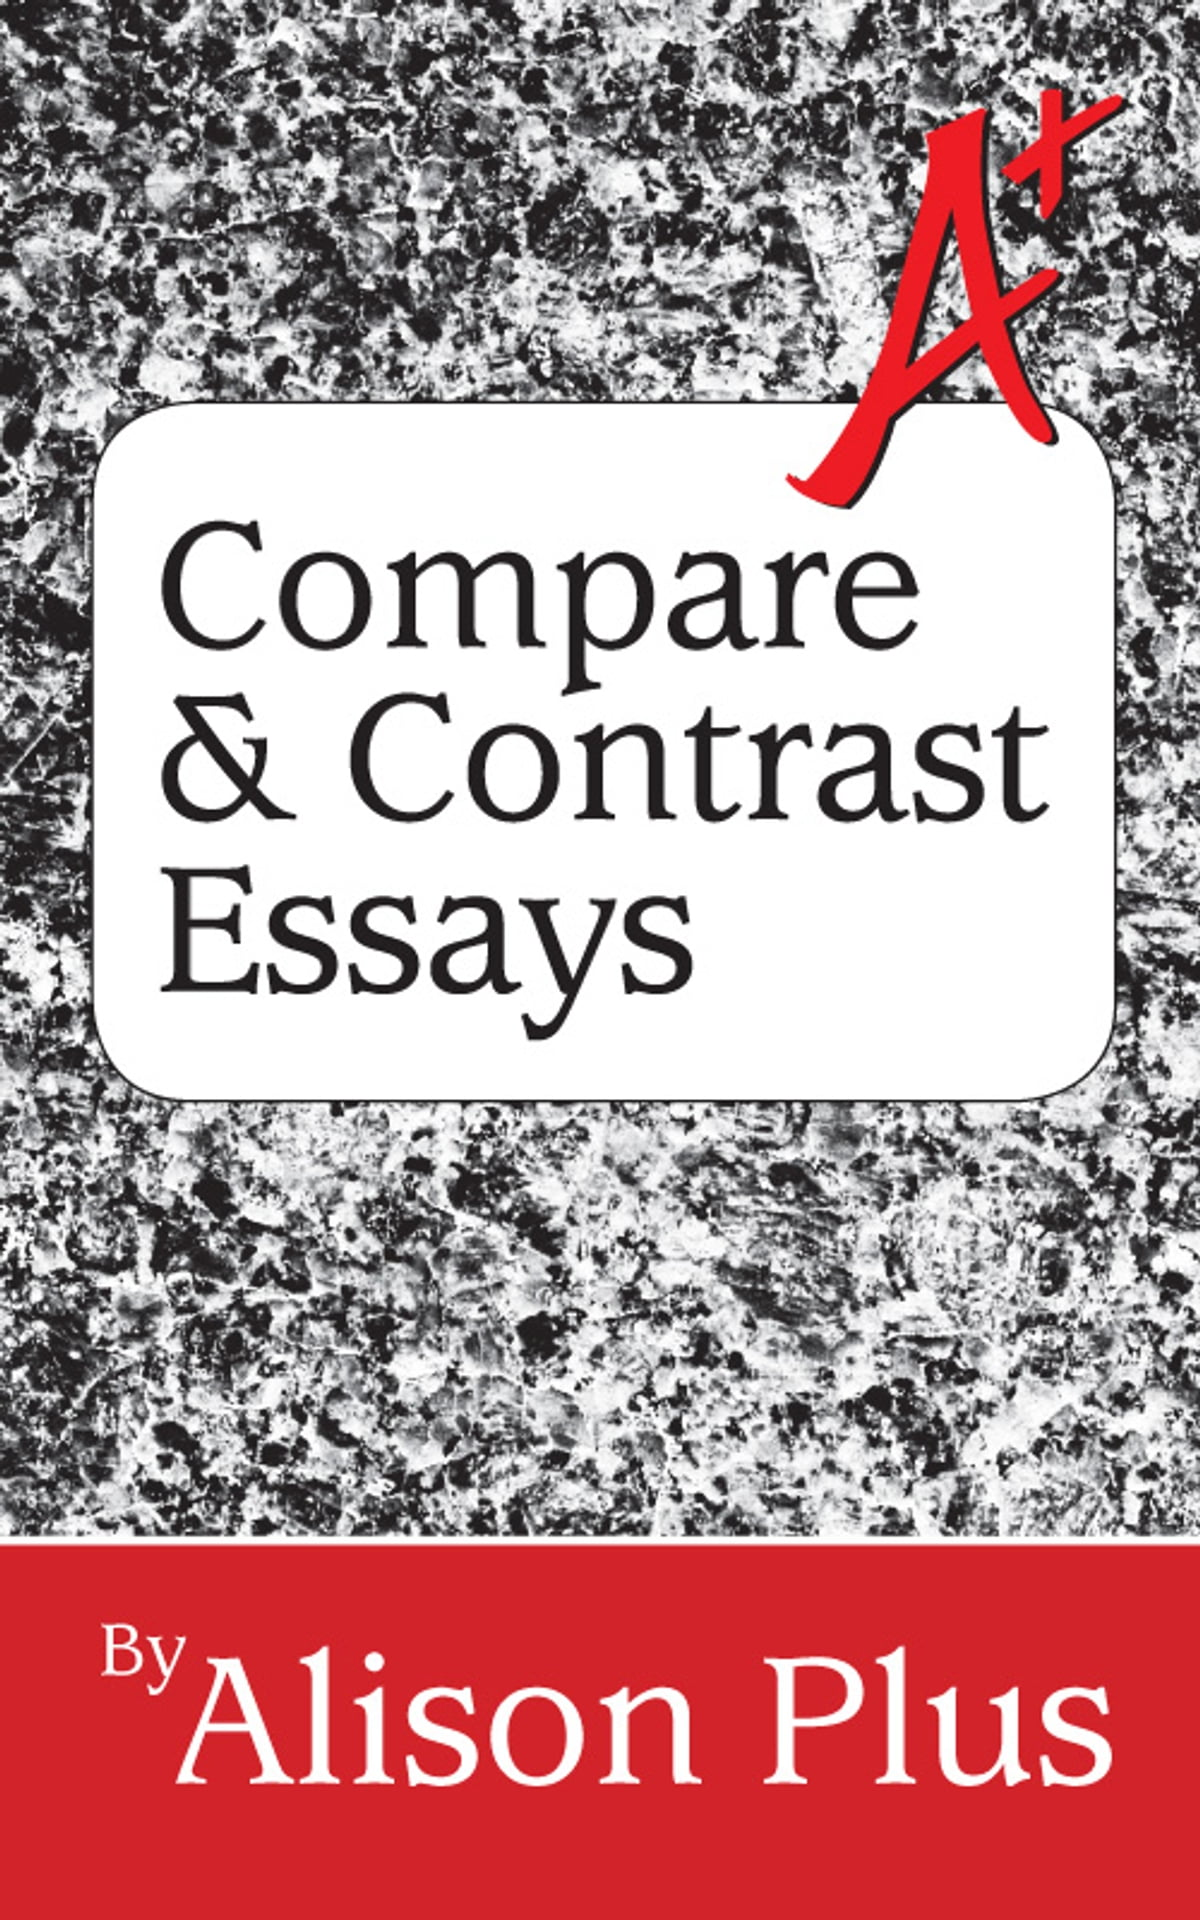 A Guide To Pare And Contrast Essays Ebook By Alison Plus Rakuten Kobo